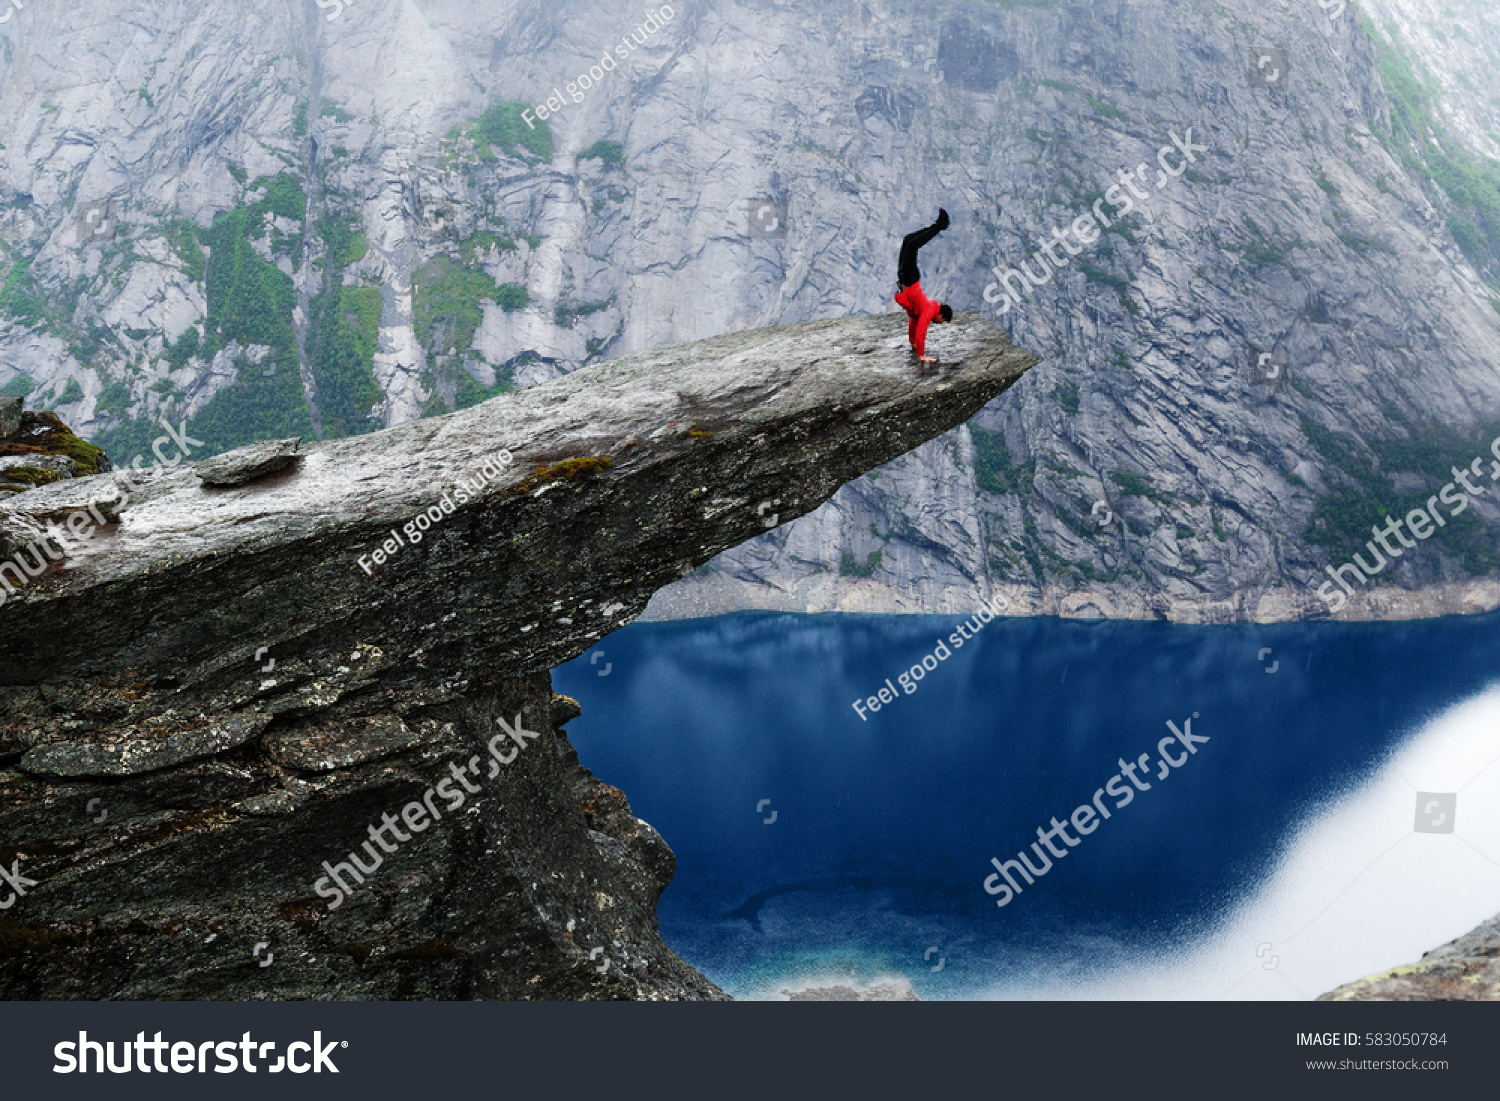 Young Man Climber Red Jacket Making Stock Photo 583050784 ...